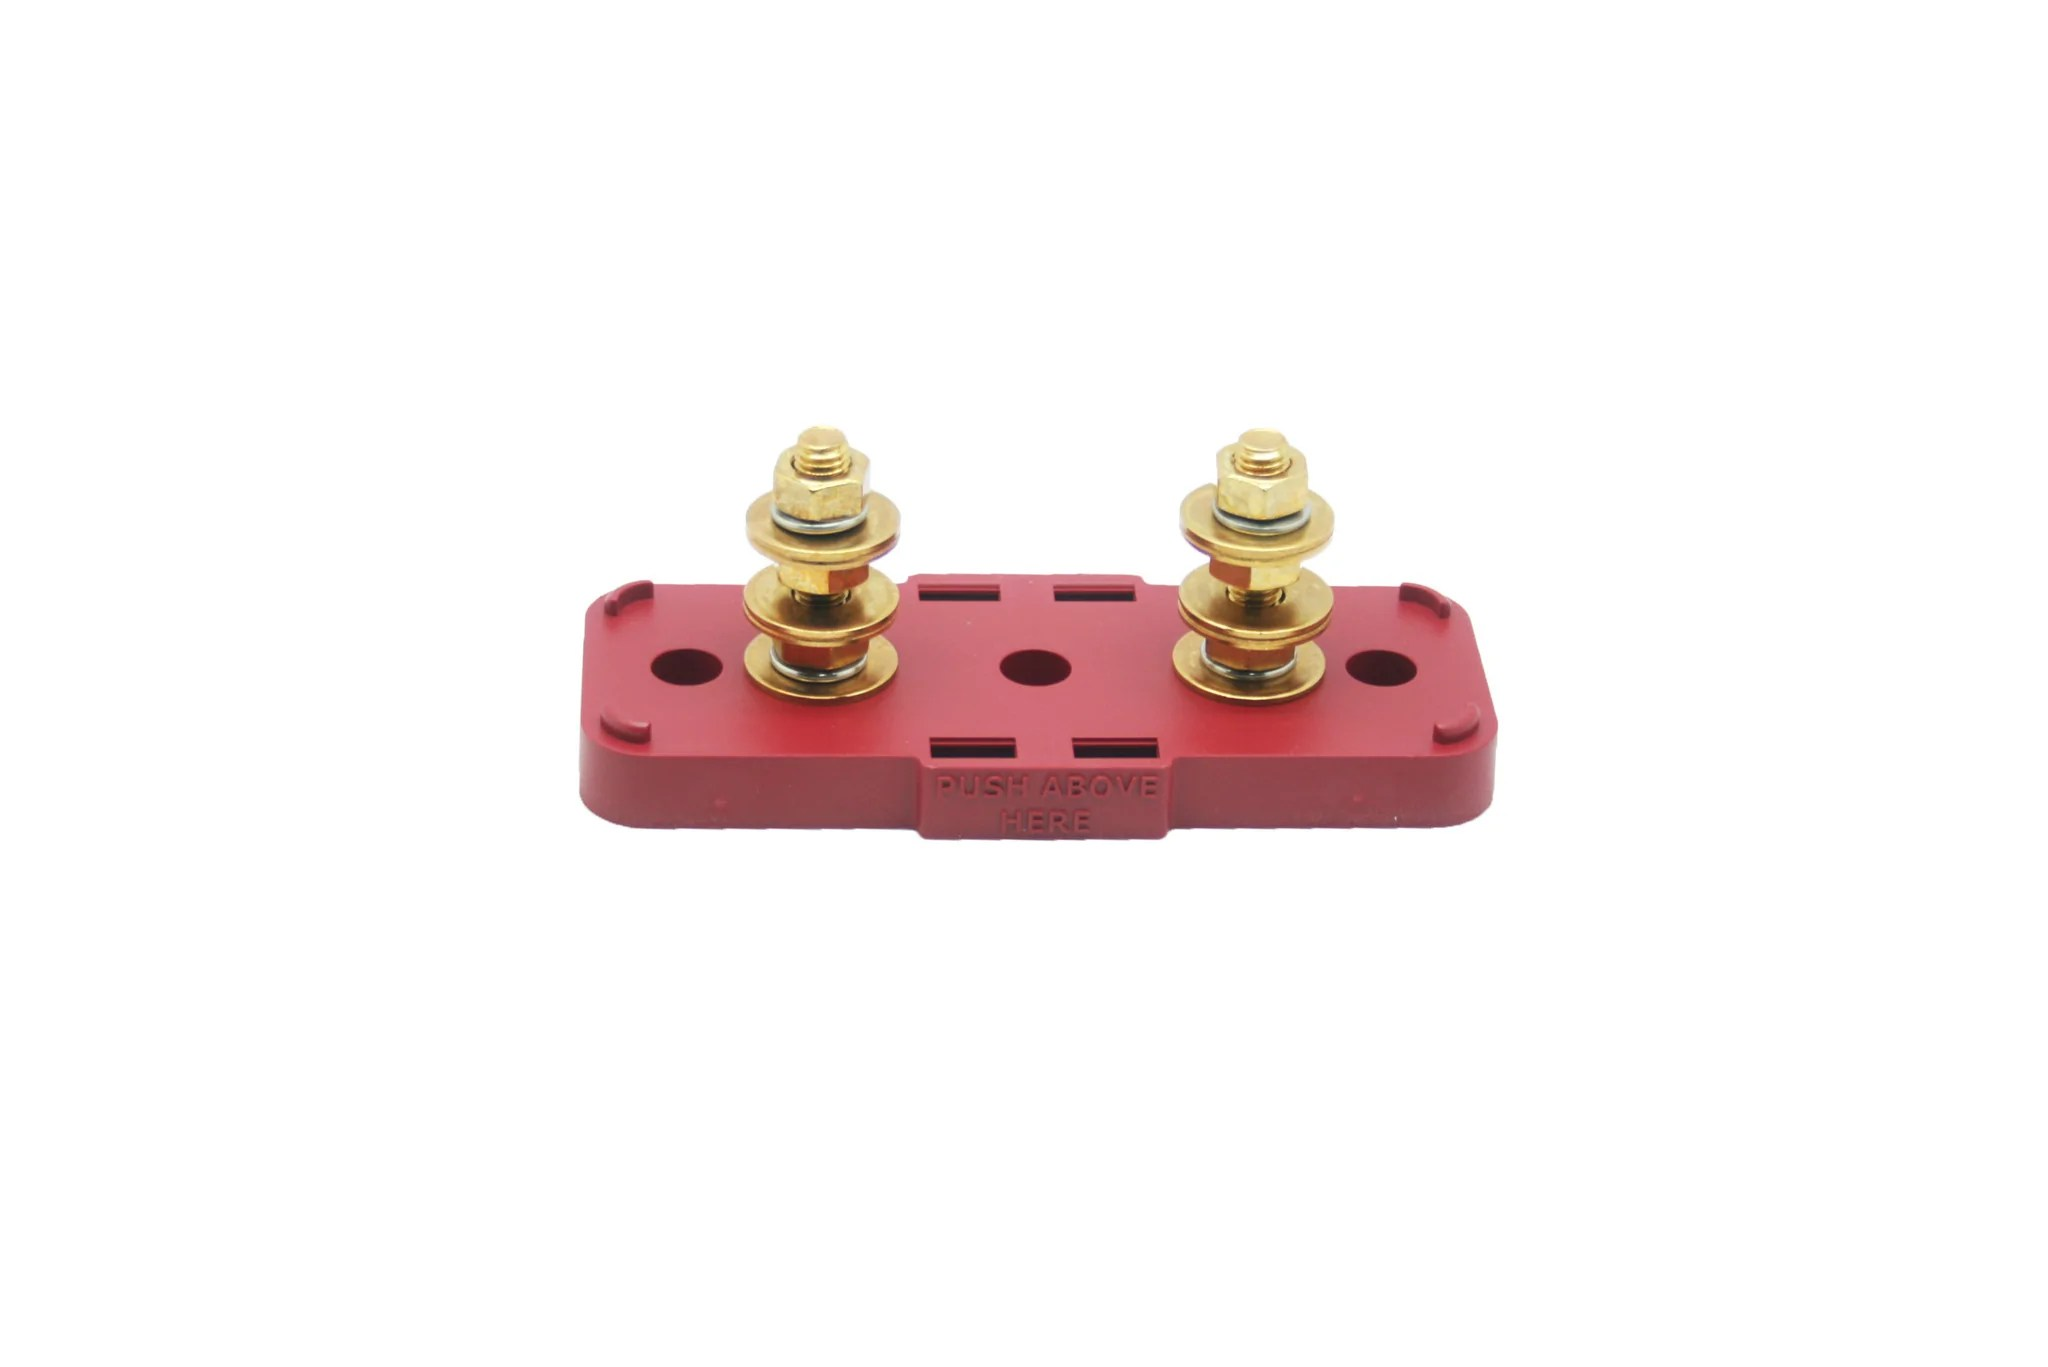 small resolution of gold plated fuse holders m8 up to 500a m12 up to 1000a